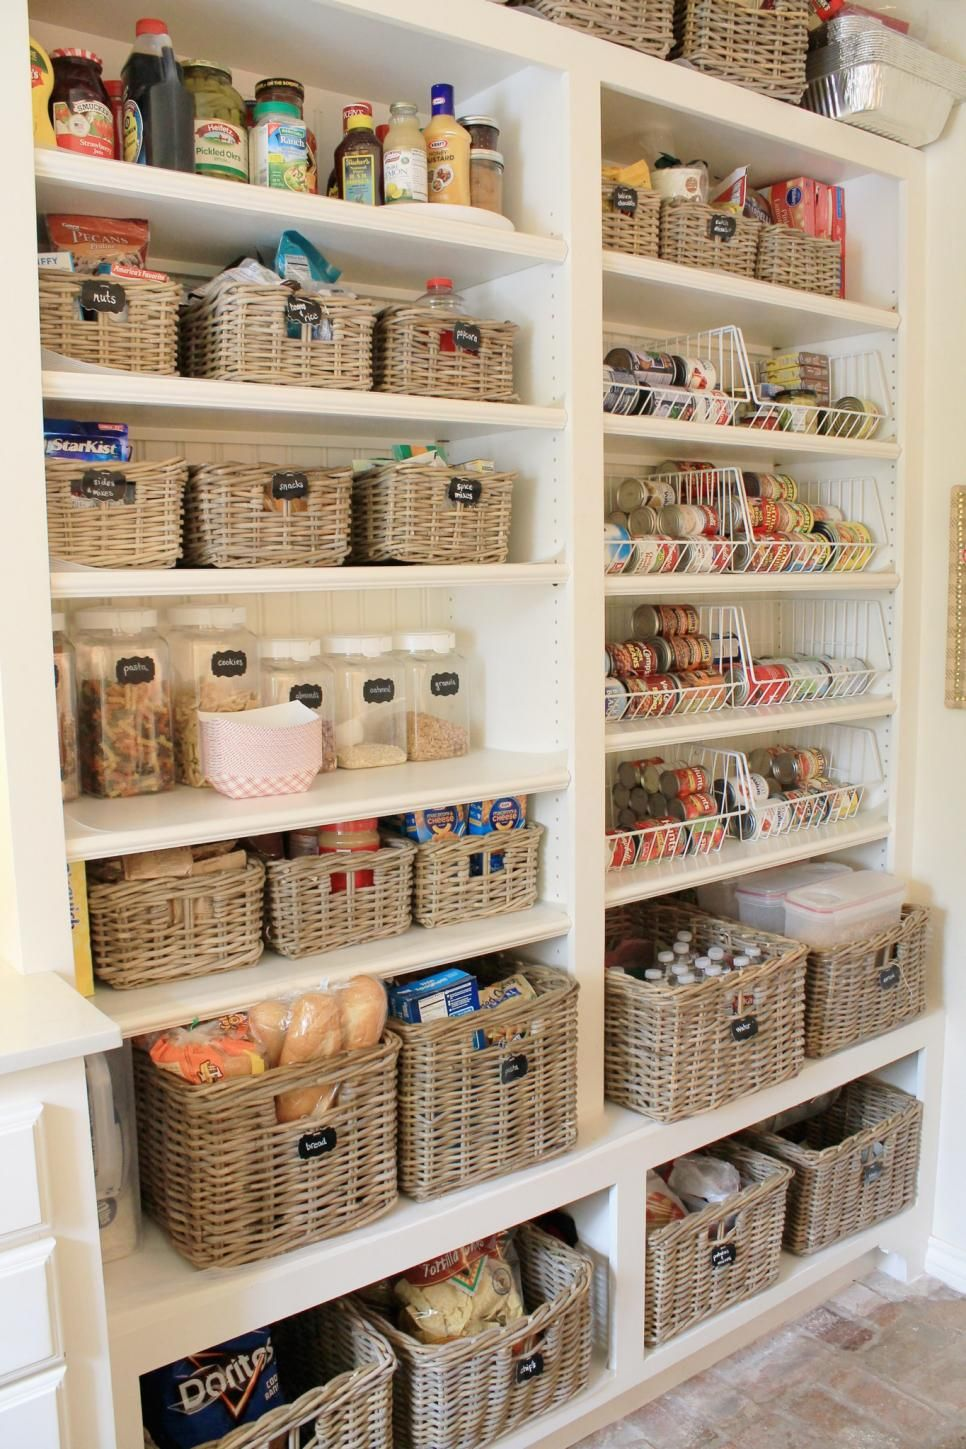 60 Organizers For A Picture Perfect Pantry Pantry Organizers Pantry Organisation Home Organization